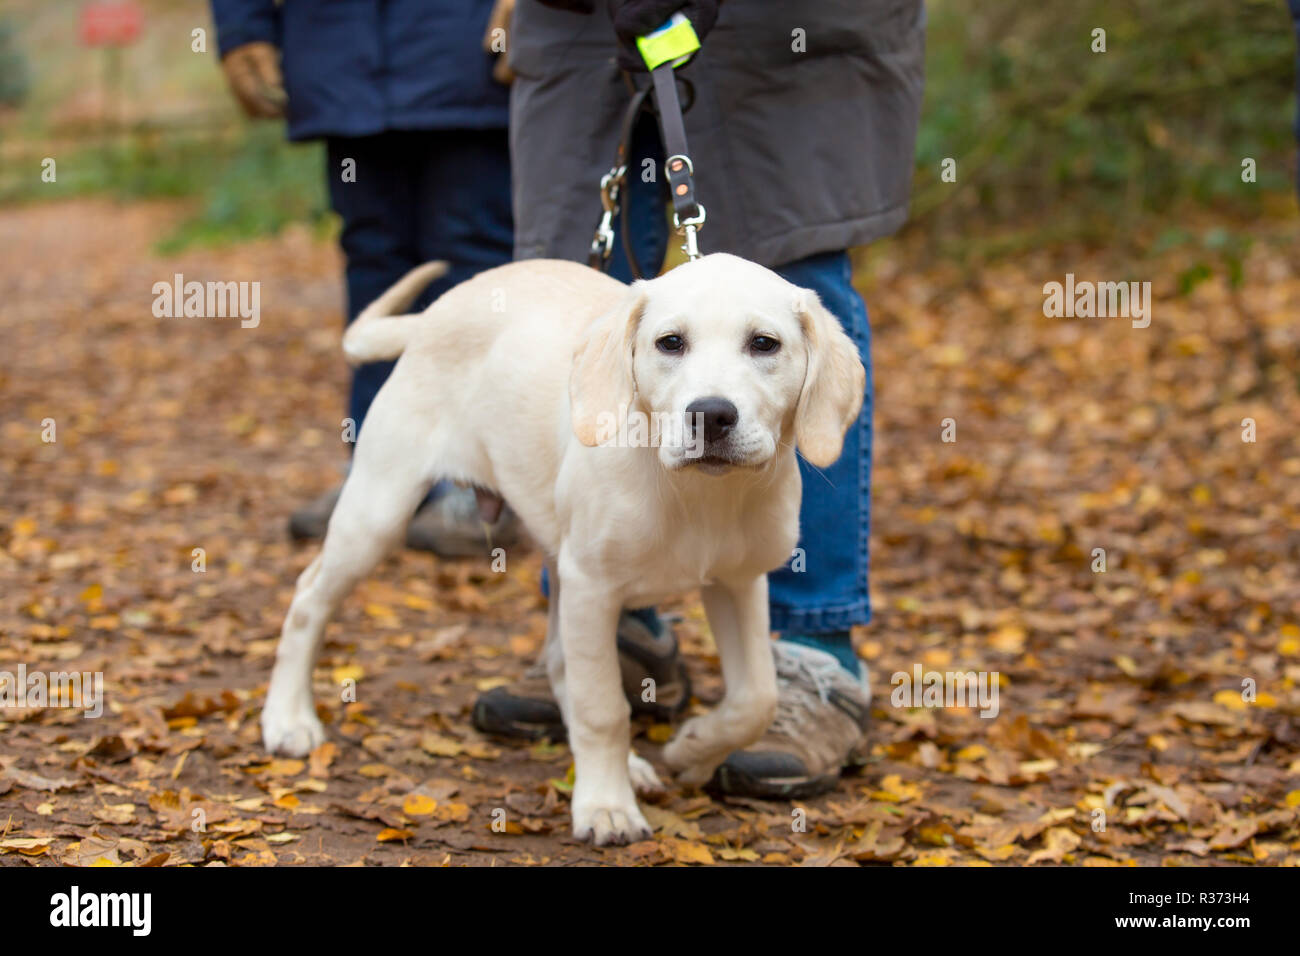 Landscape shot of one guide dog puppy in training during his walk in UK country park. Puppy walker volunteers out on obedience training in autumn. - Stock Image